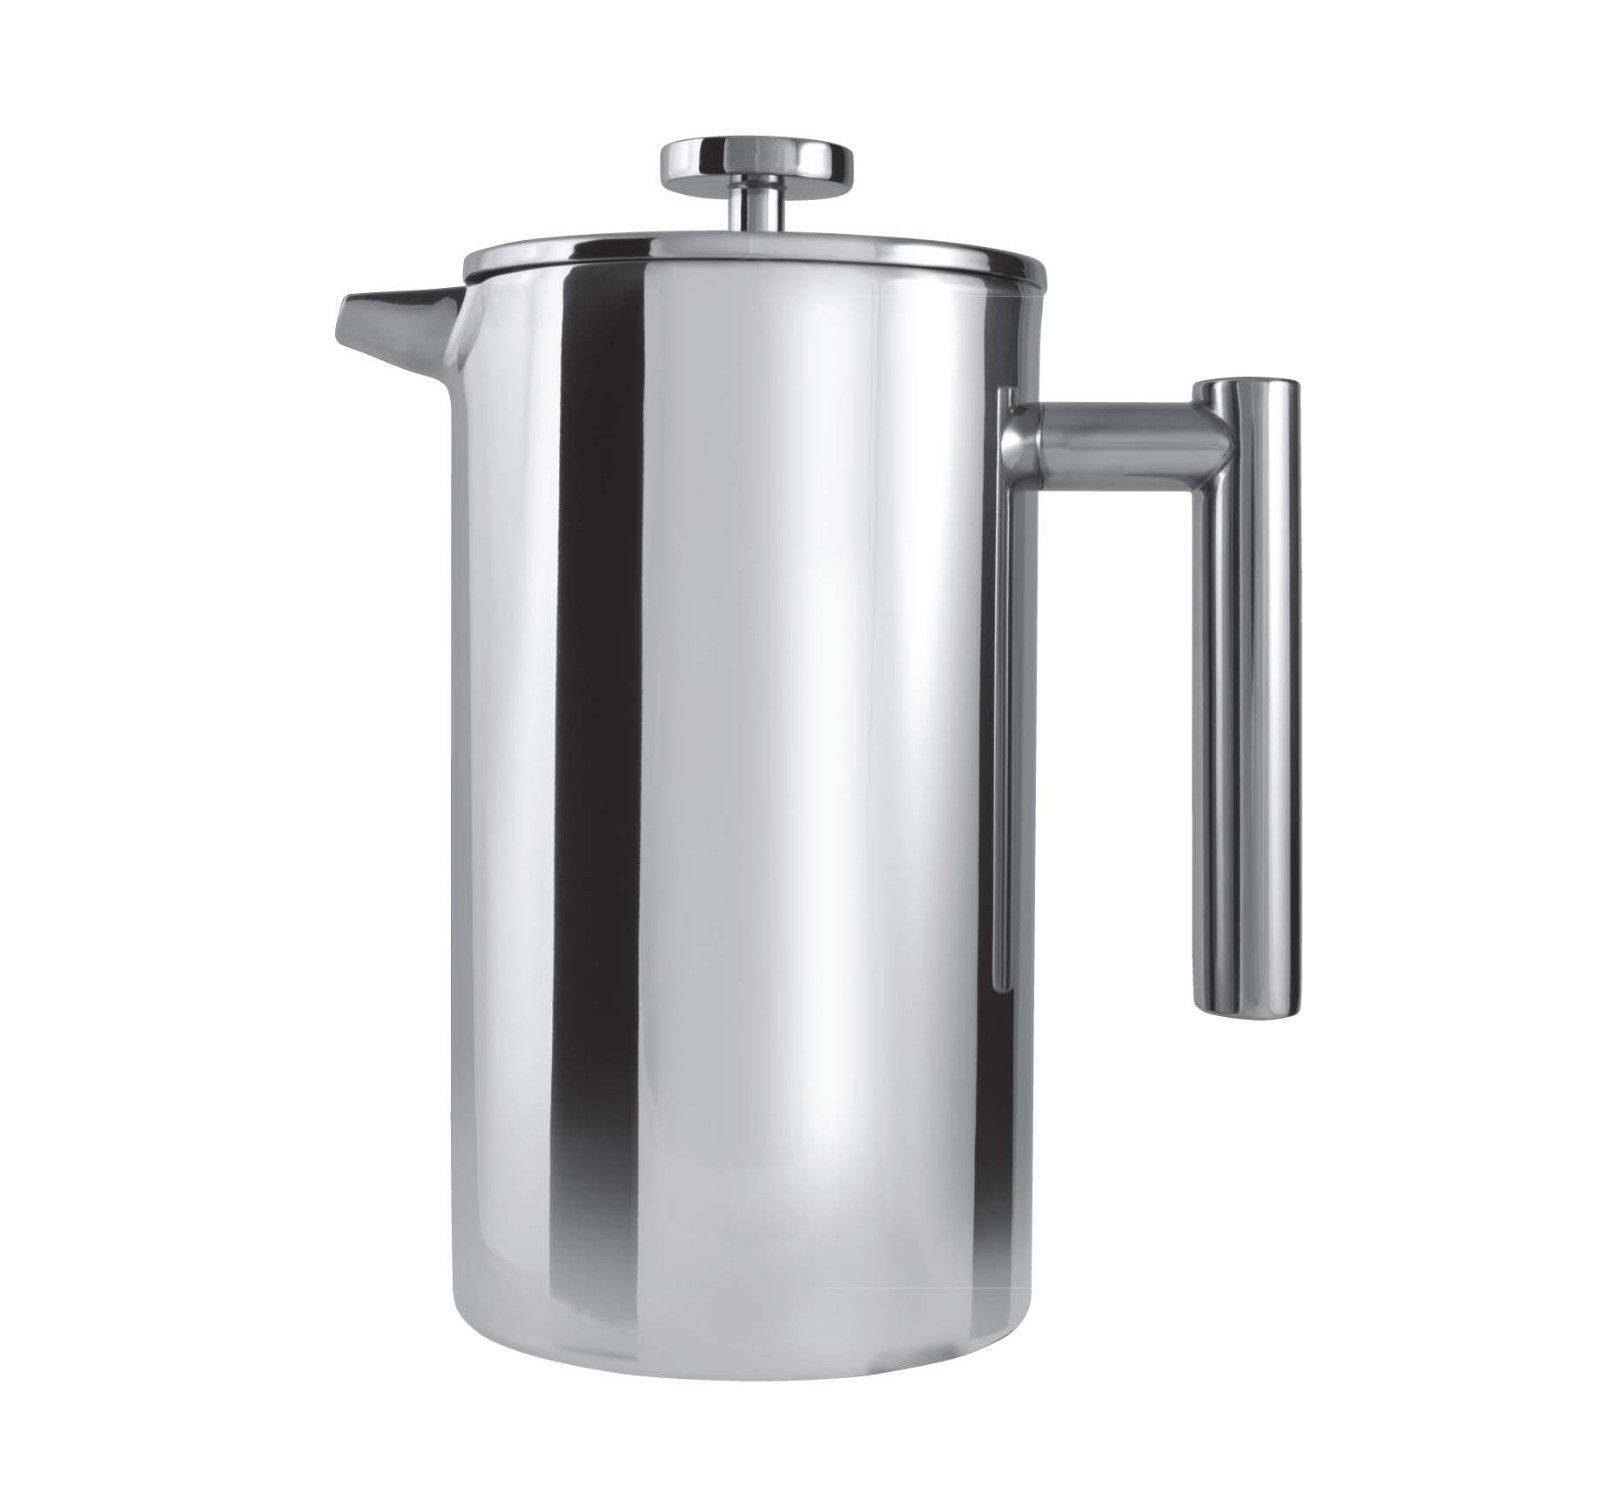 Grunwerg 12 Cup Straight Double Wall Coffee Maker Stainless Steel